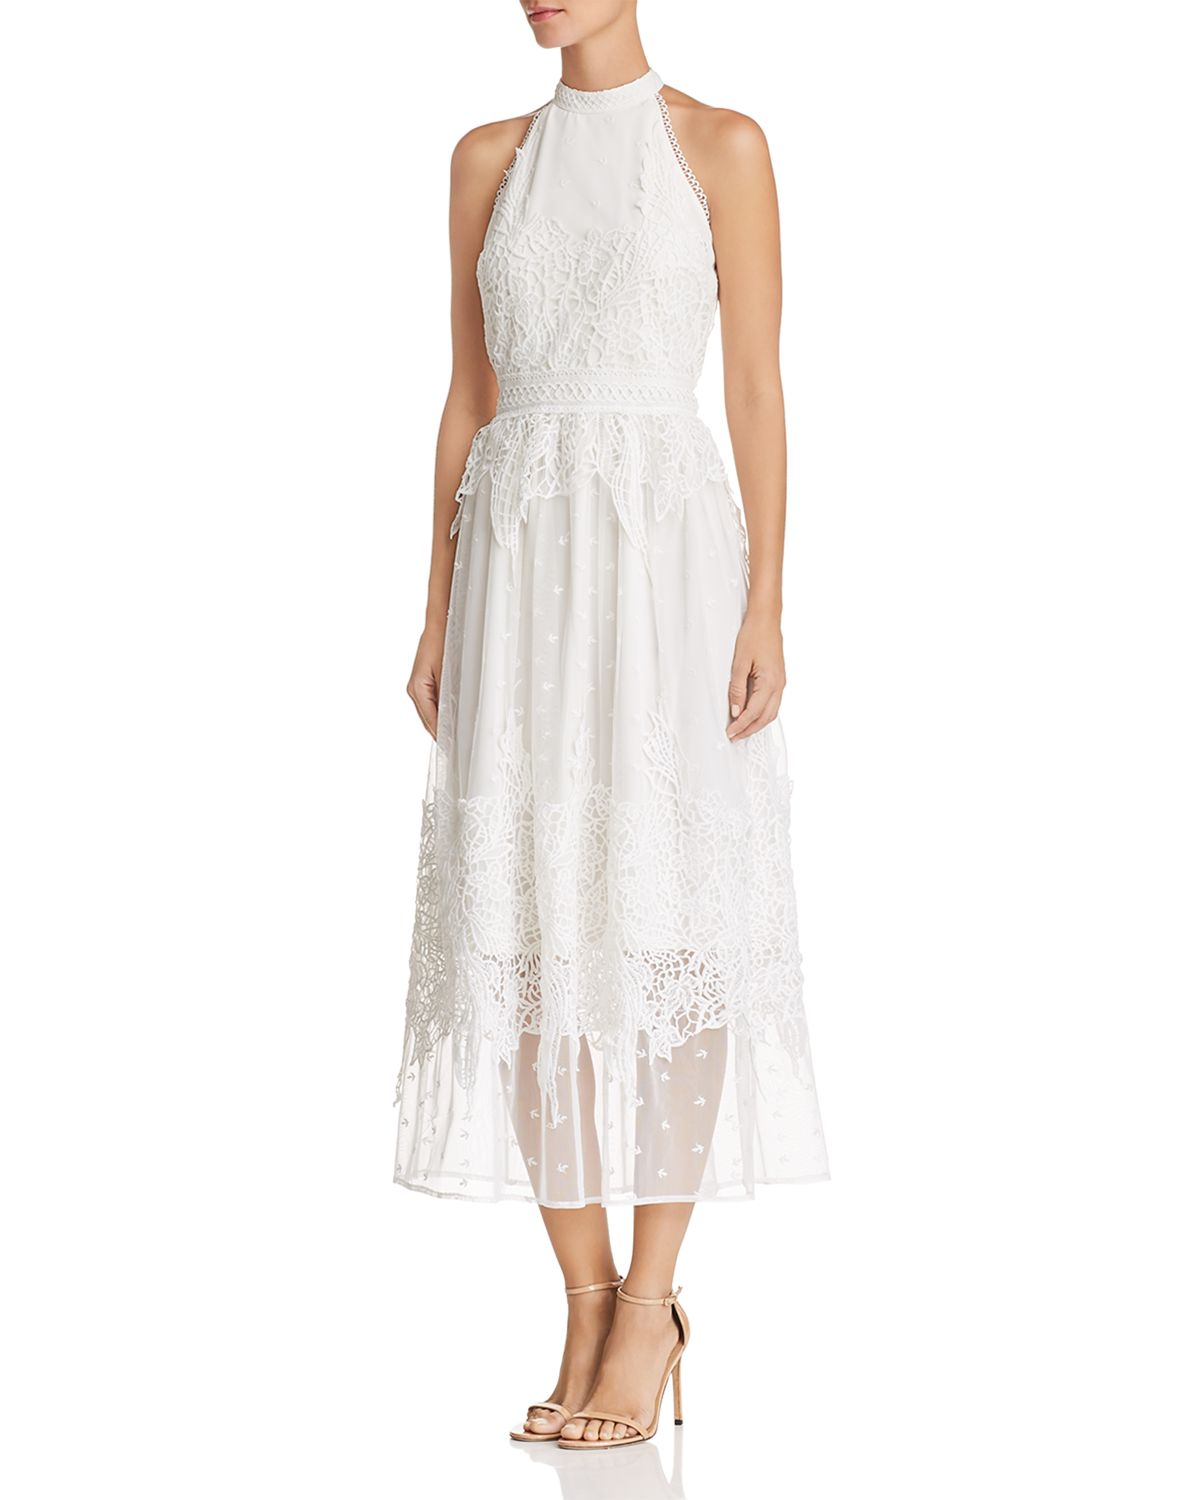 Botanical Lace Appliqué Midi Dress   100 Percents Exclusive by Vince Camuto Petites